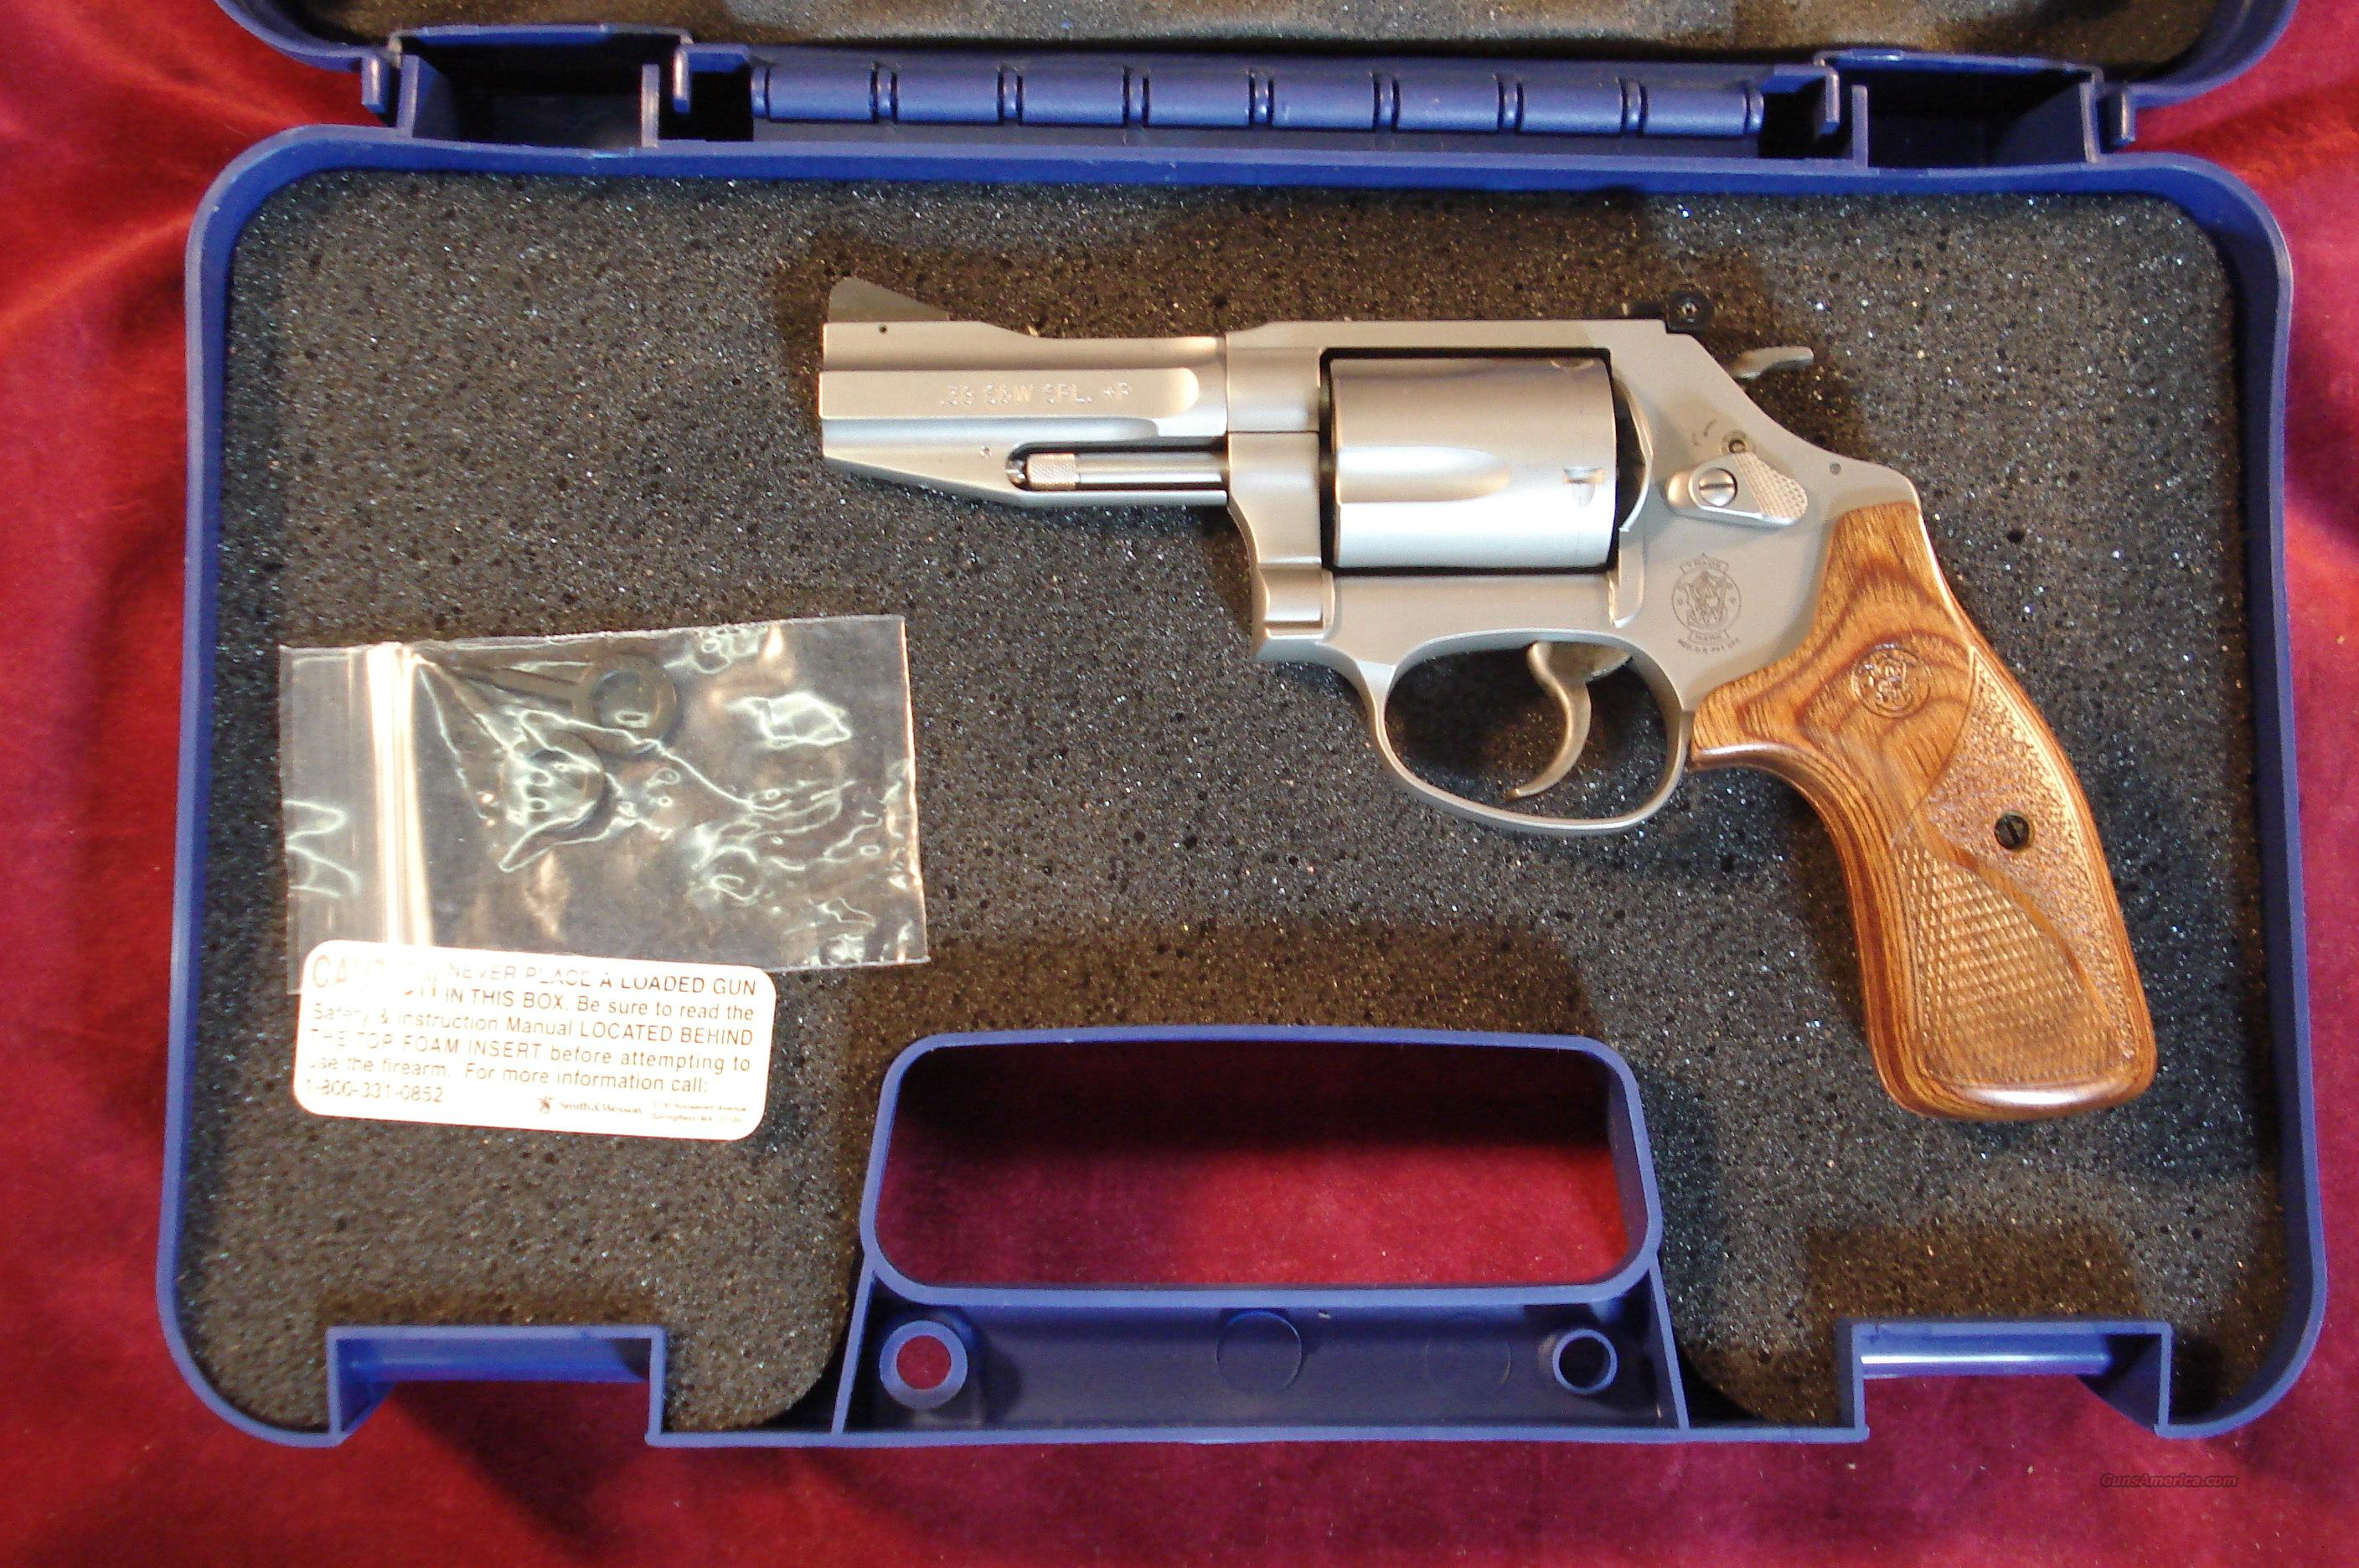 SMITH AND WESSON 60 PRO SERIES NEW  Guns > Pistols > Smith & Wesson Revolvers > Pocket Pistols